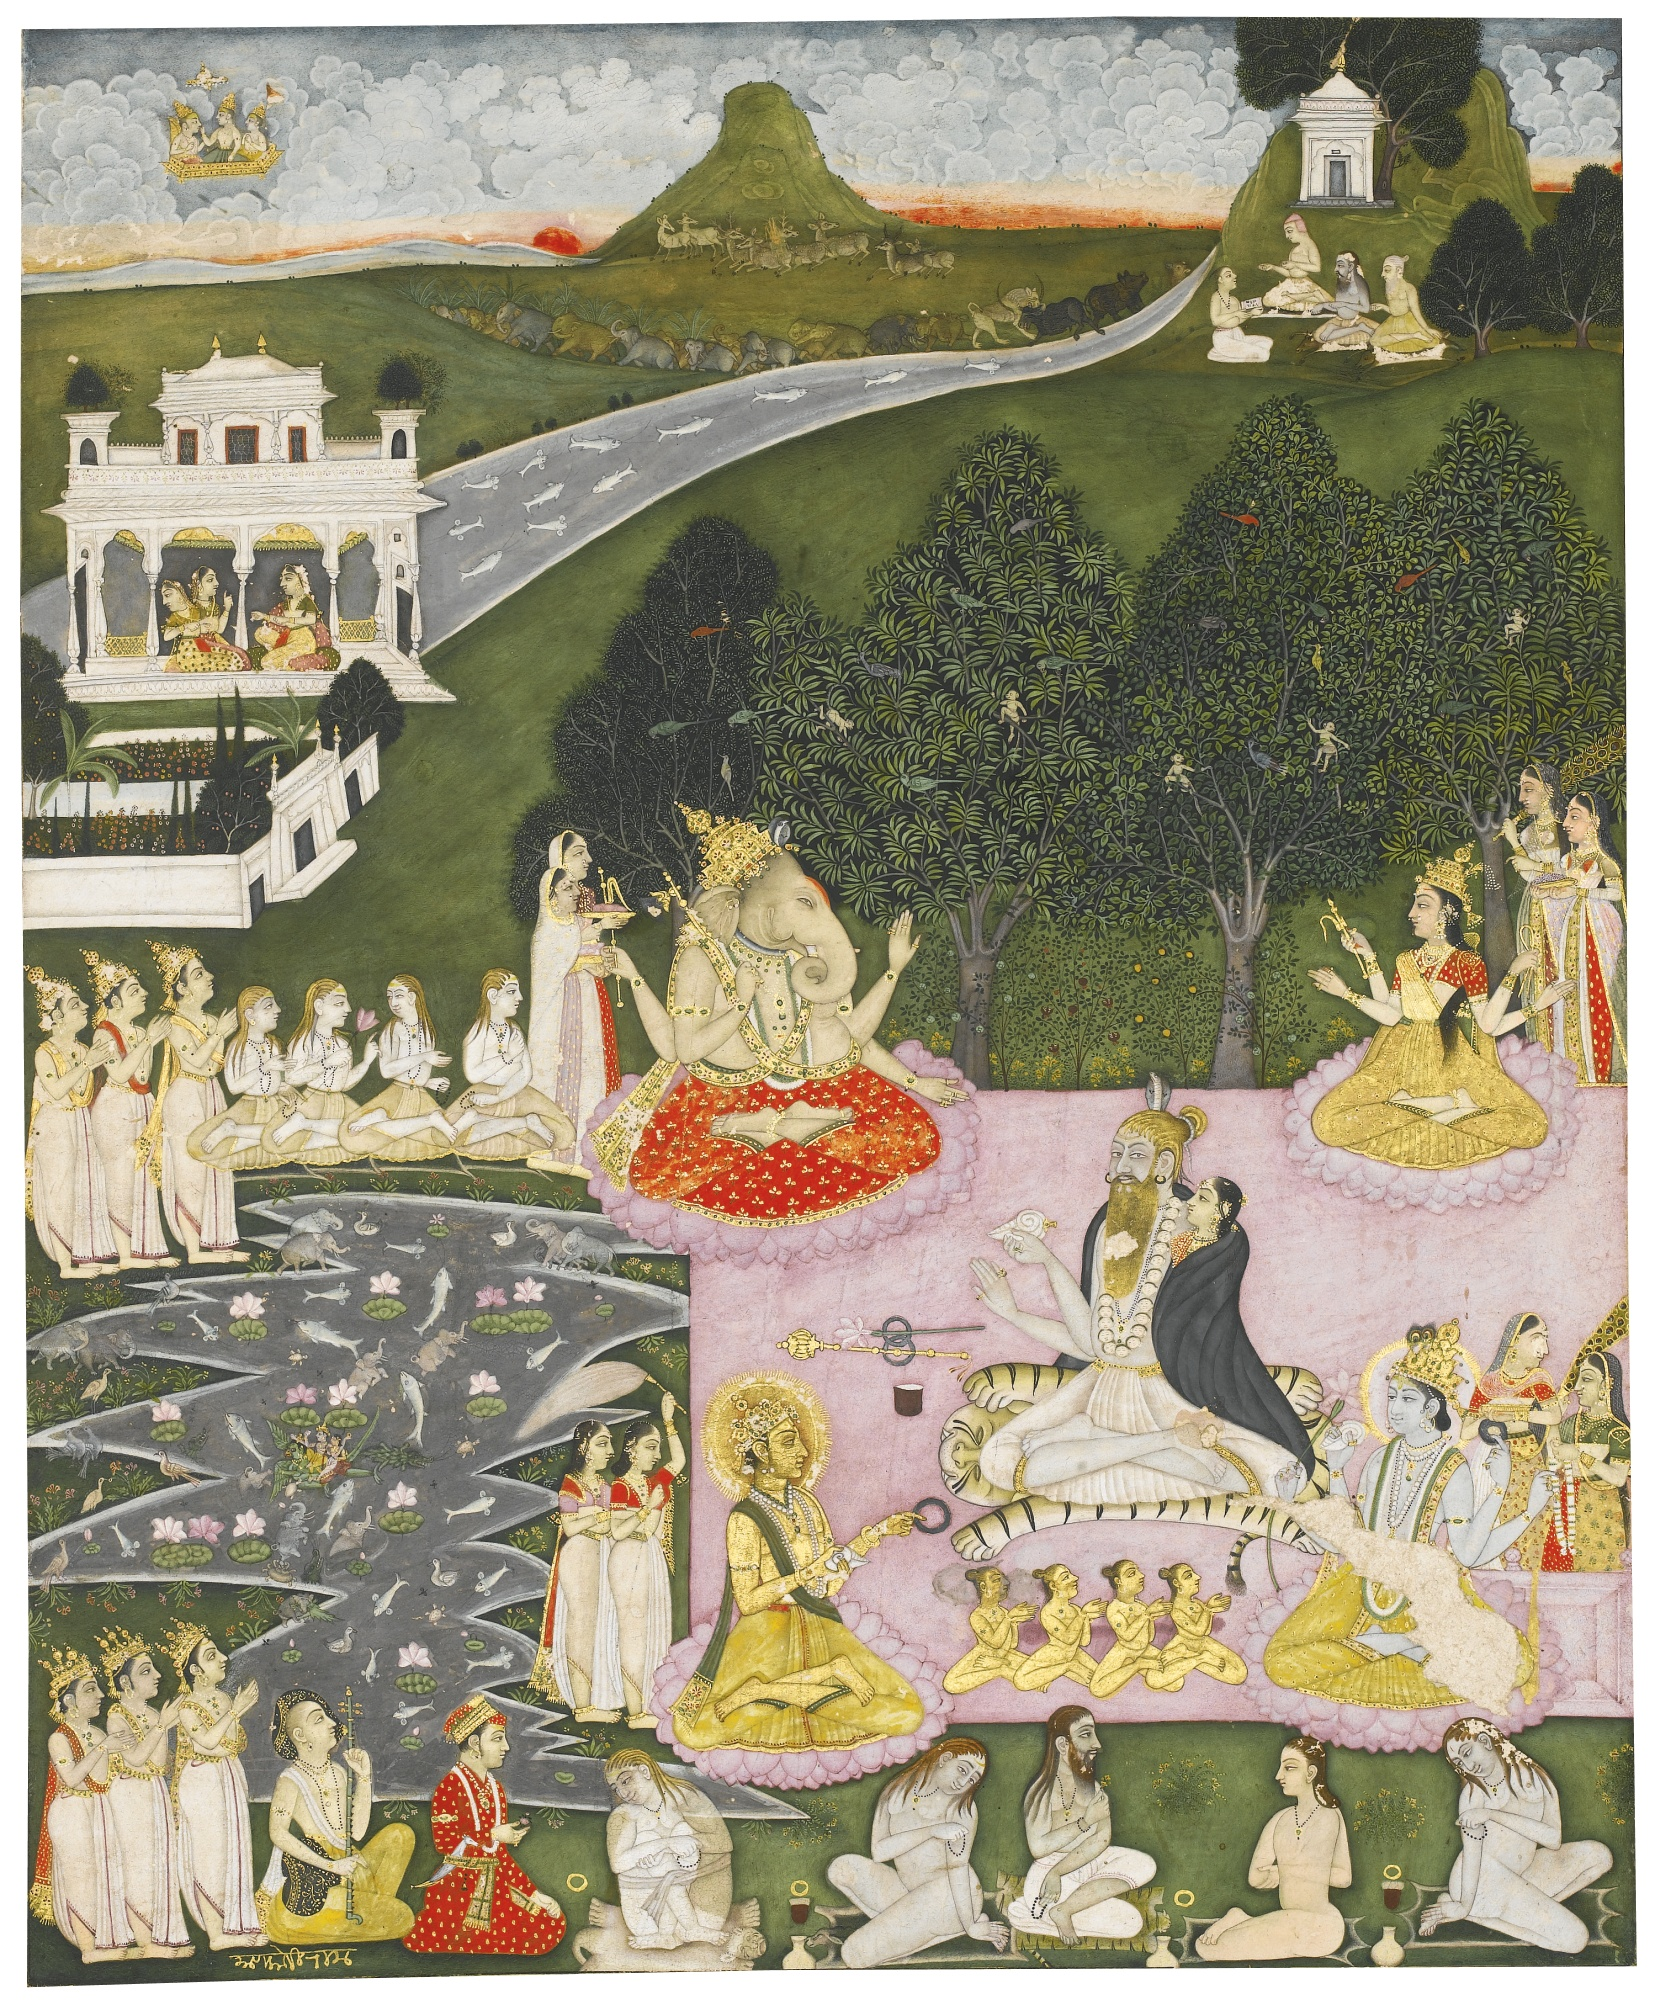 An Assembly of Hindu gods, Ascetics and Worshippers - Deccan Painting, Hyderabad or Bidar, early 18th century